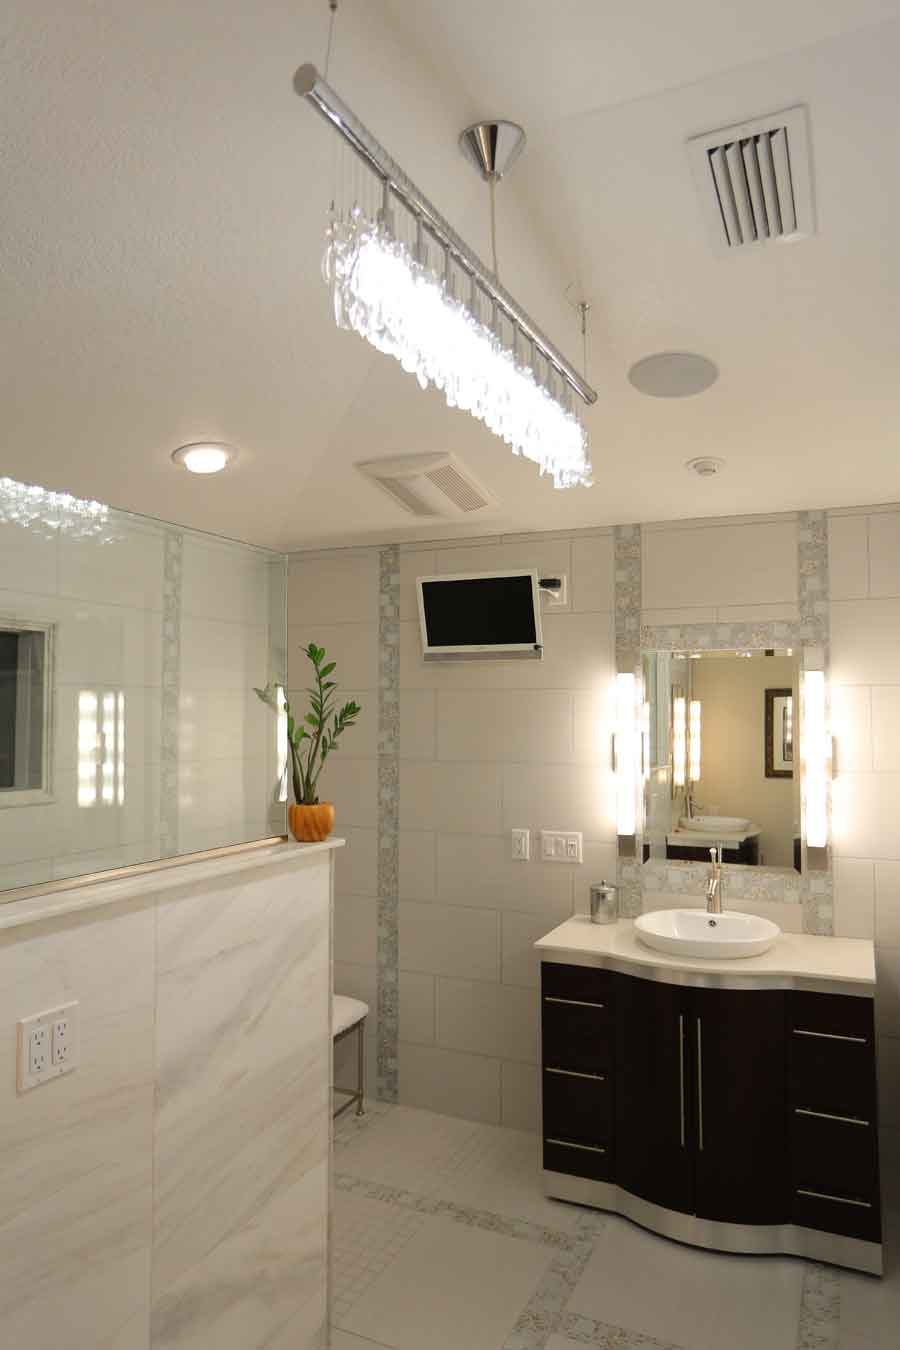 The master bathroom underwent a major renovation. The old shower was converted into a glass medicine cabinet and linen closet. The new shower is equipped with wonderful amenities, including rain showerheads, body jets, a television, and stereo.